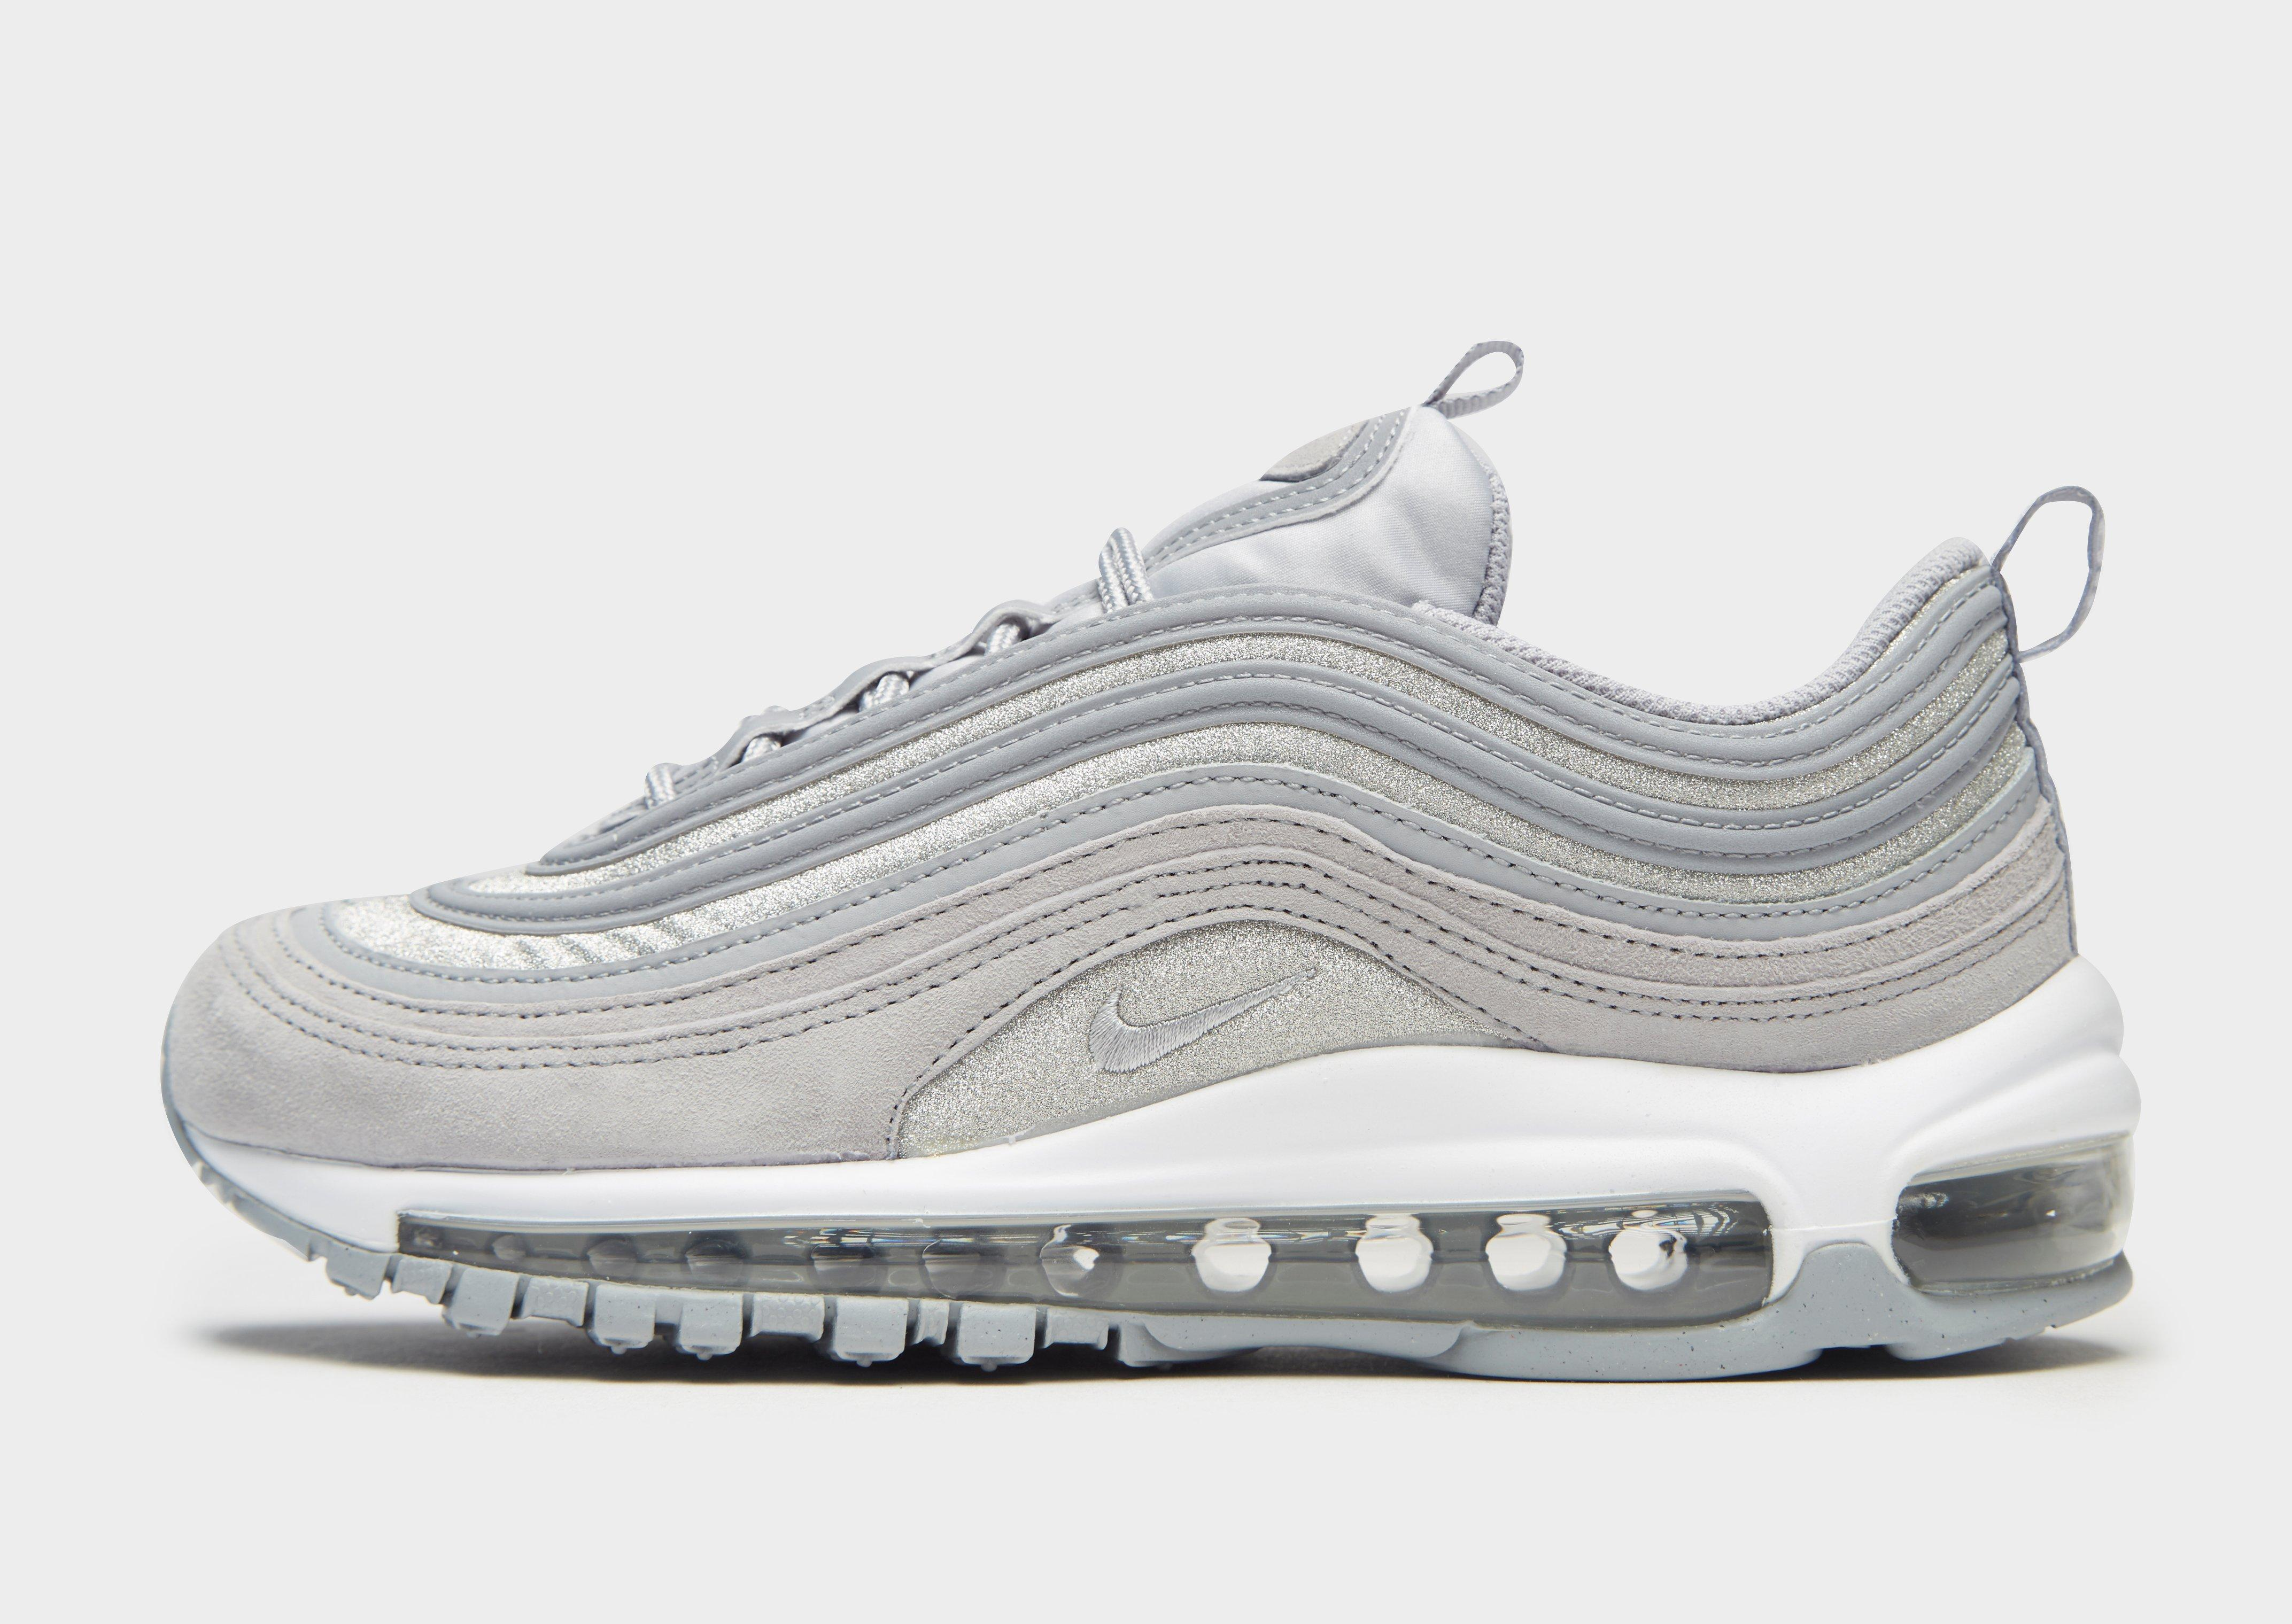 hot new products cheap sale factory outlets air max 97 femme jd une vente de liquidation de prix bas ...